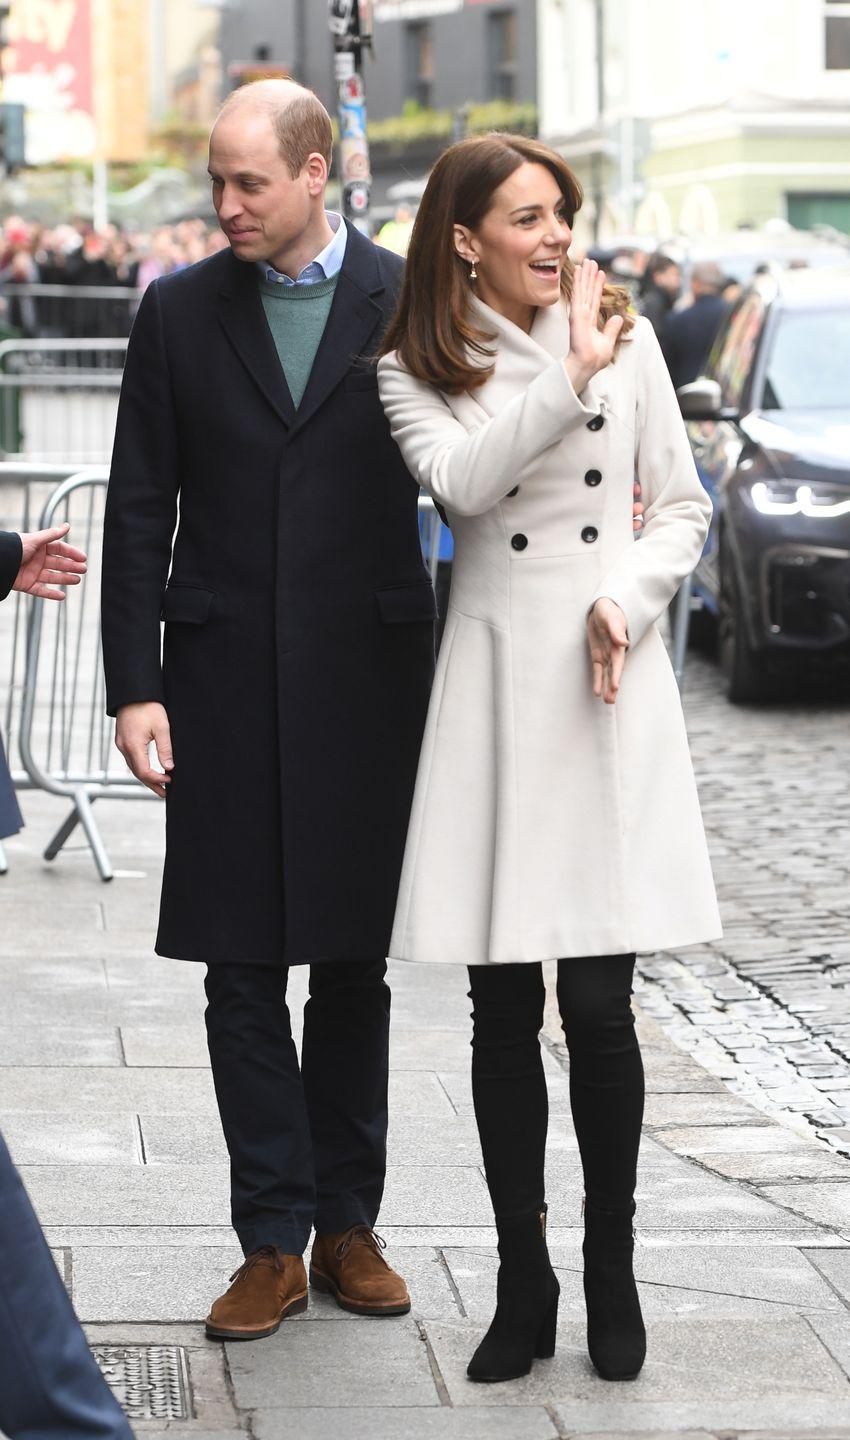 <p>Catherine, Duchess of Cambridge (AKA Kate Middleton) stepped out during the royal tour of Ireland wearing an ivory coat by Reiss that she wore for the first time in 12 years - scroll through to see the then VS. now comparison. While Kate teamed the coat with tights and mid-rise boots for the first outing, the Duchess opted for a pair of black trousers and heeled ankle boots the second time around. </p>